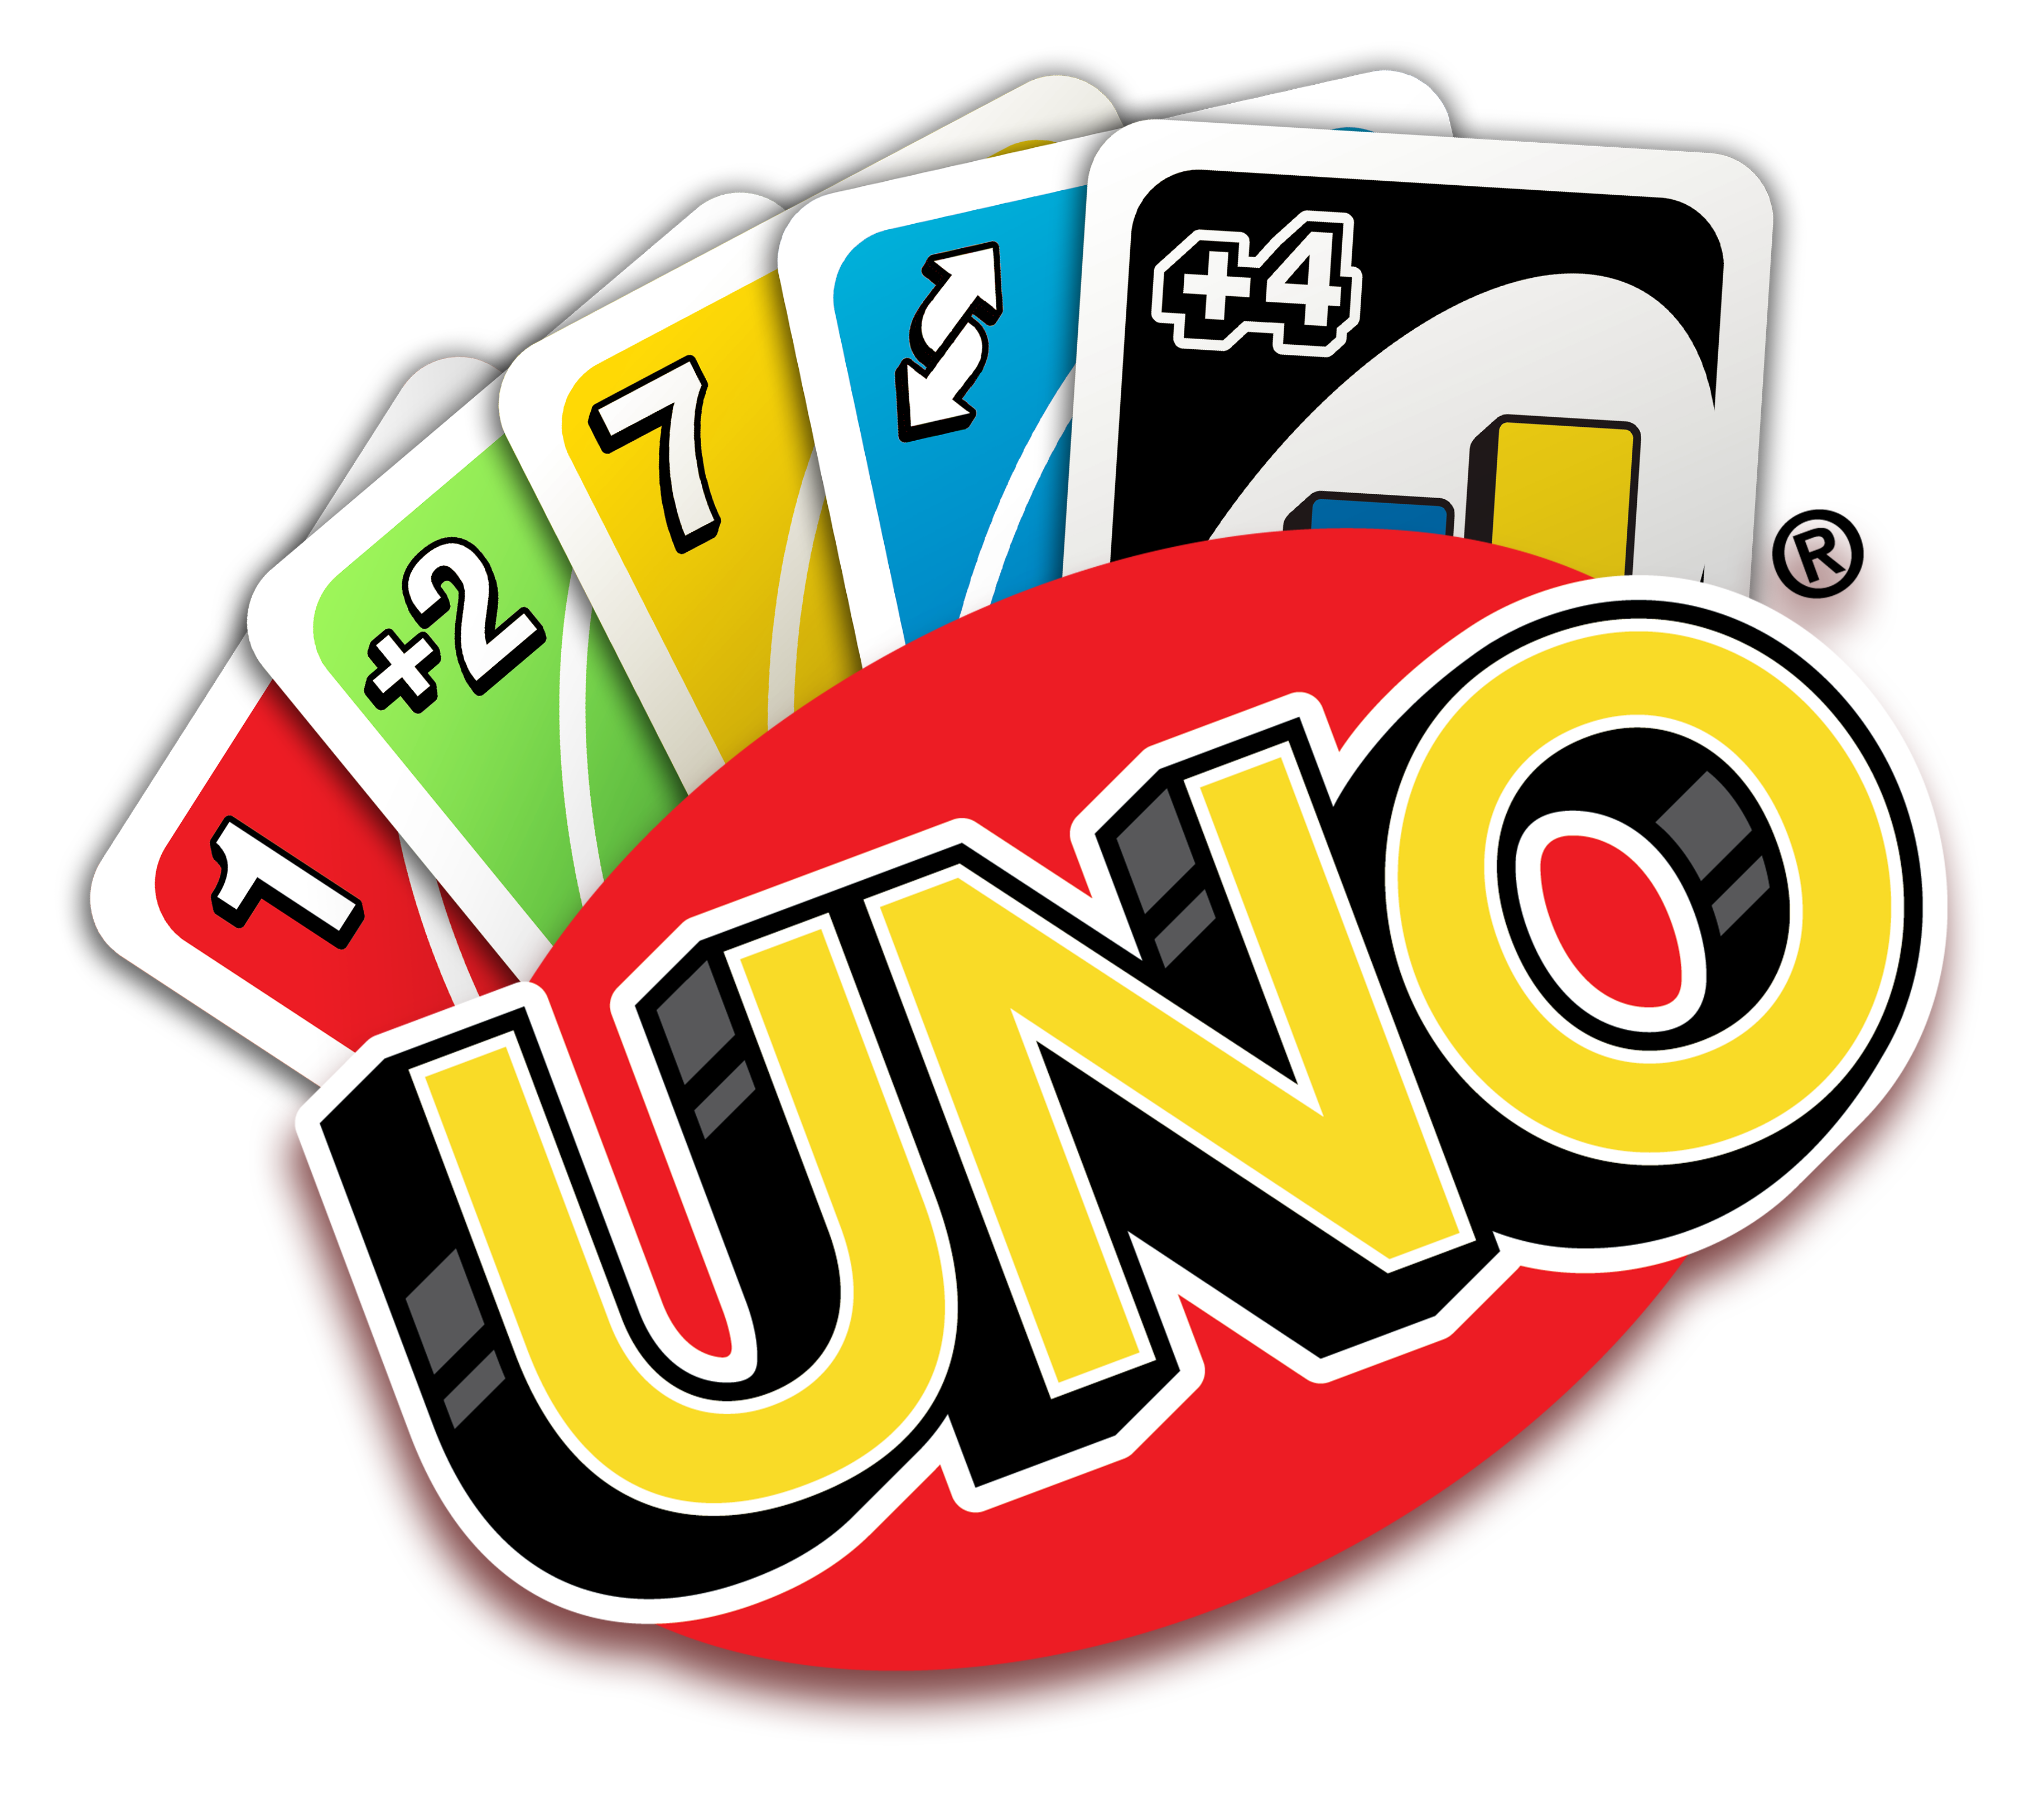 Game clipart card. Uno review average xbox